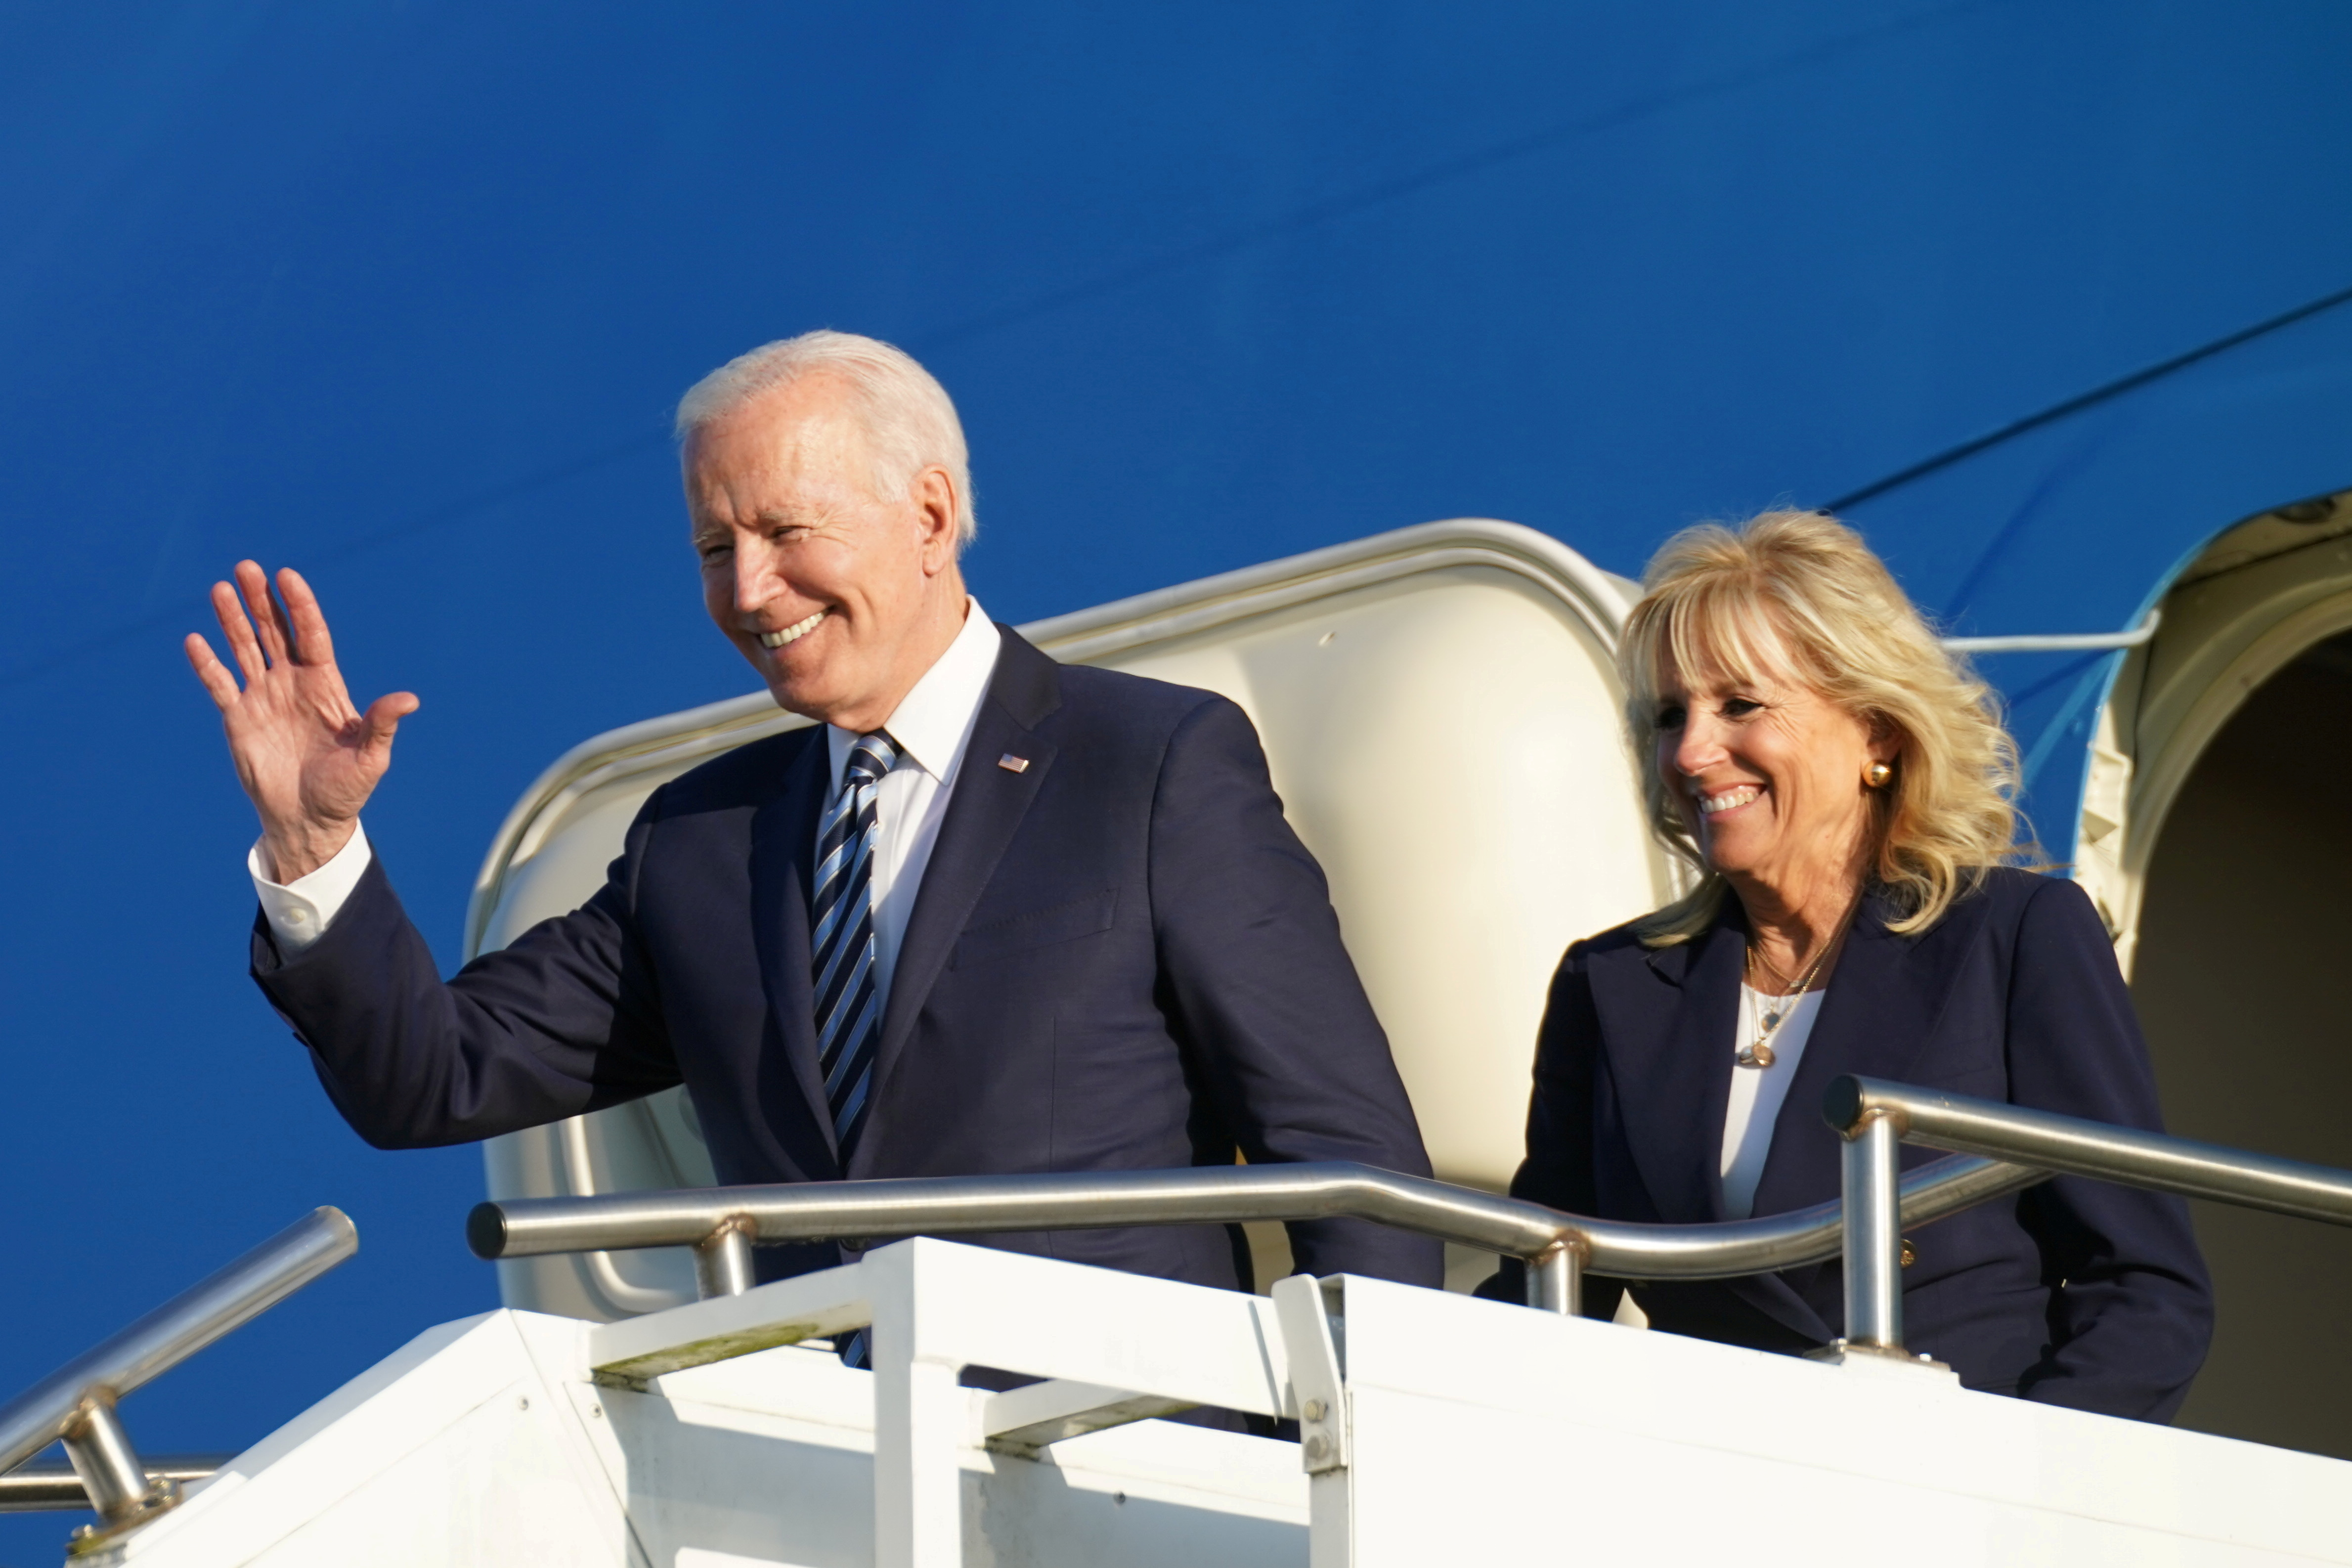 U.S. President Joe Biden and first lady Jill Biden disembark from Air Force One as they arrive at RAF Mildenhall ahead of the G7 Summit, near Mildenhall, Britain June 9, 2021. REUTERS/Kevin Lamarque